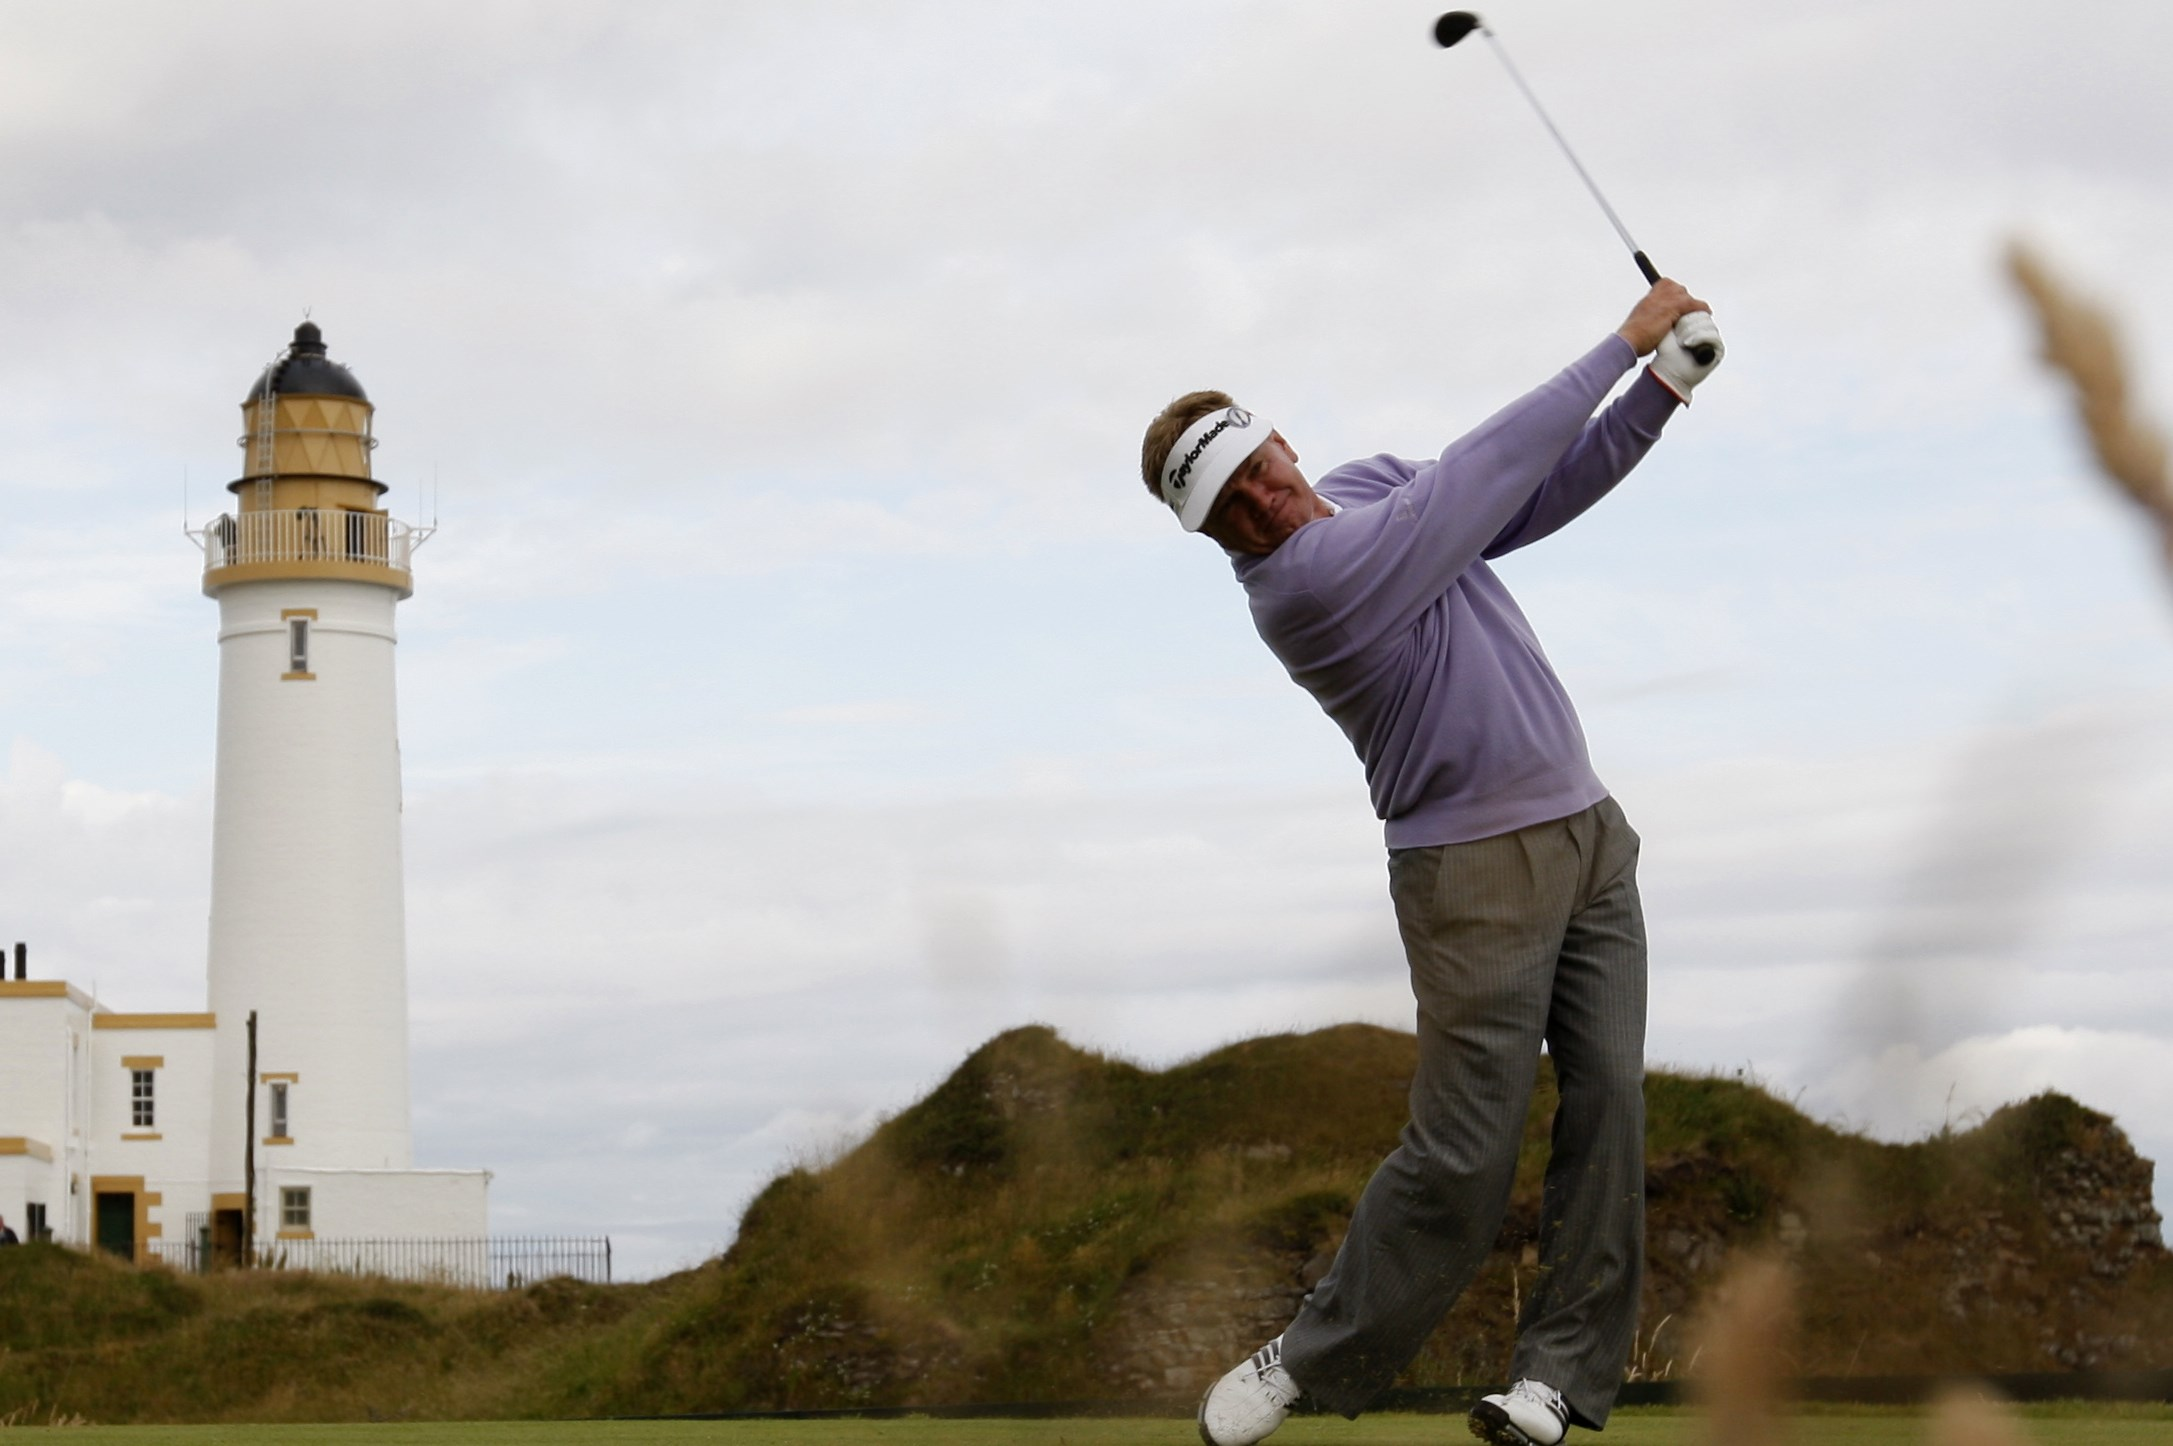 Paul Broadhurst of England plays from the tenth tee during the opening round of the British Open Golf championship, at the Turnberry golf course, Scotland, Thursday, July 16, 2009. (AP Photo/Jon Super)